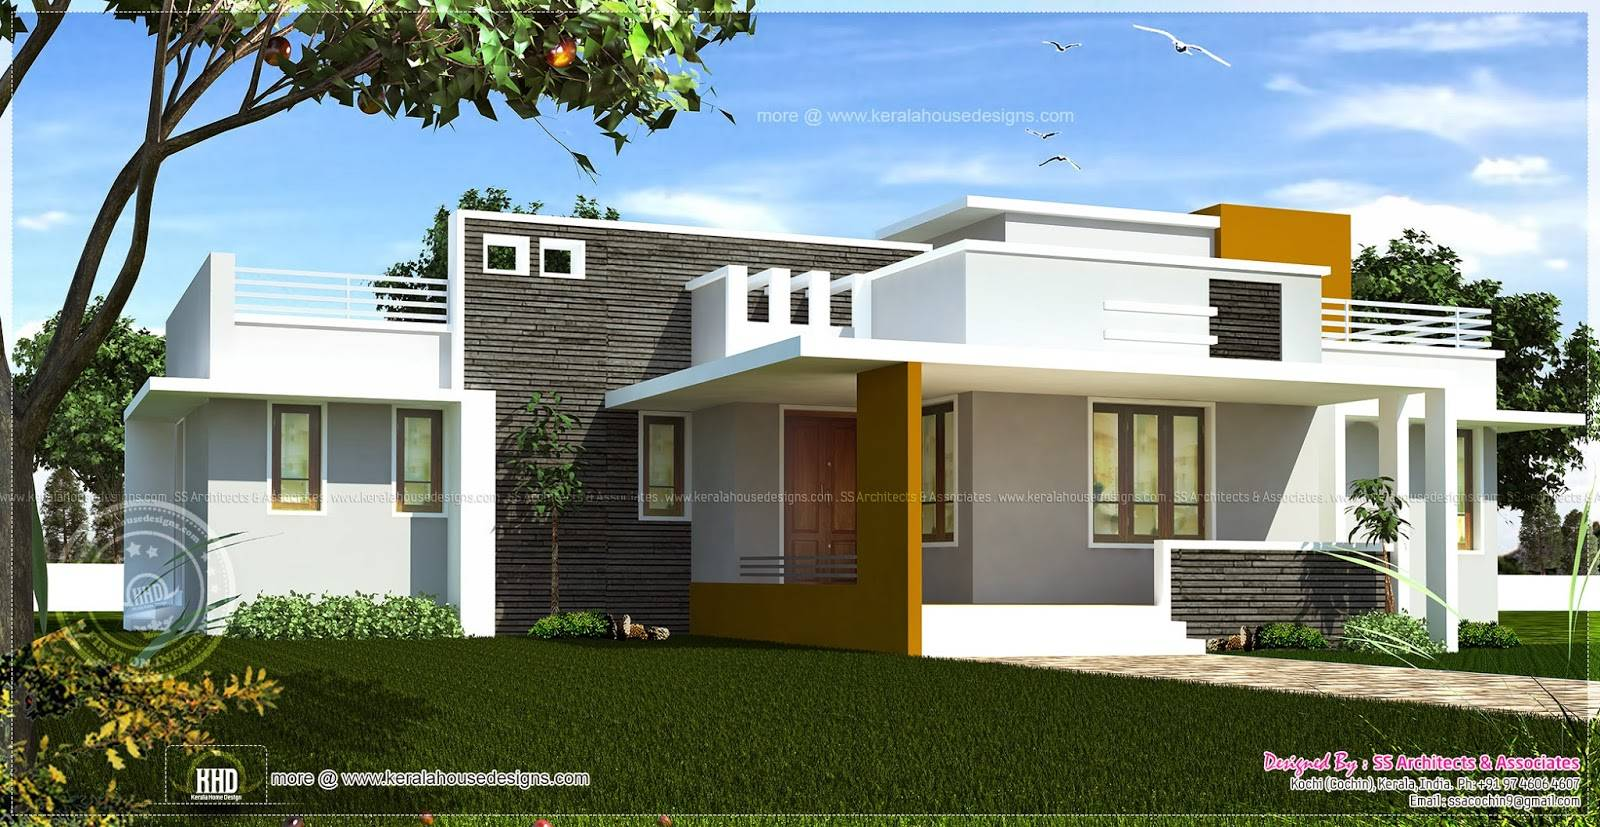 single floor house plans garage designs australia low 1460 sq ft single floor home plan